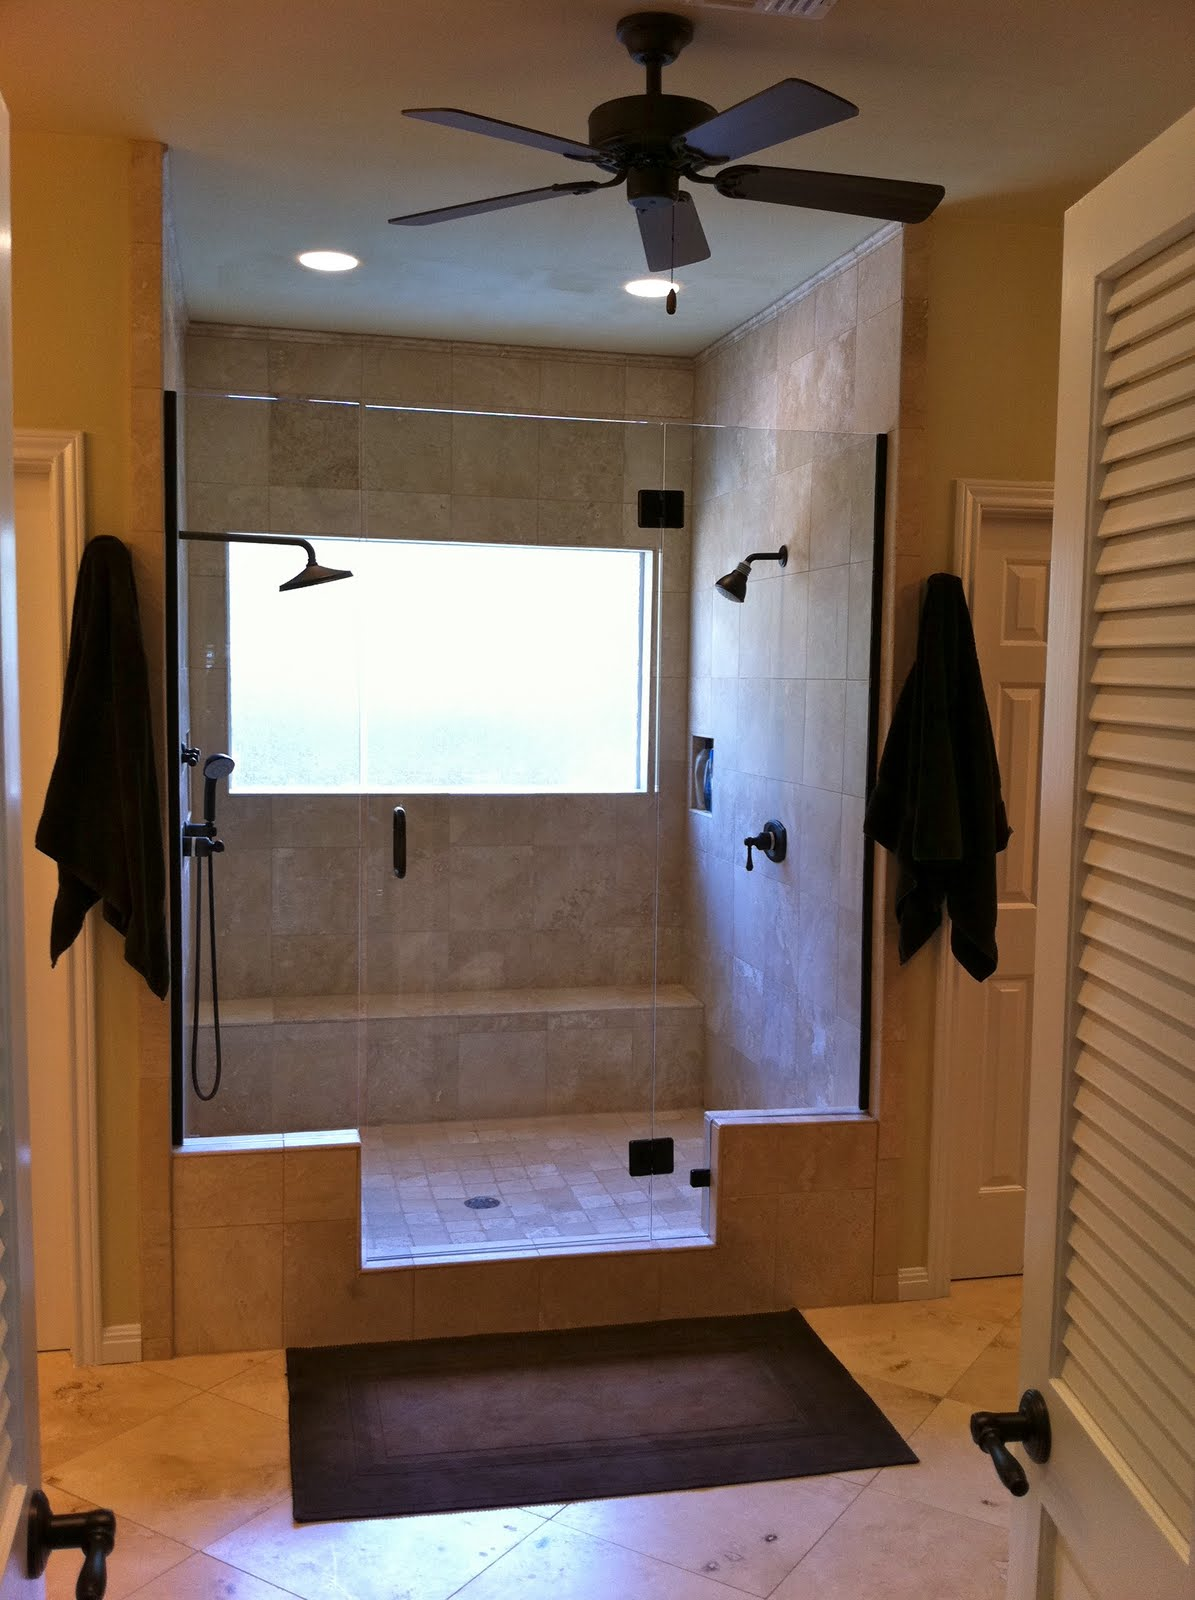 Small Bathroom Without Tub Ideas. small bathroom redesign